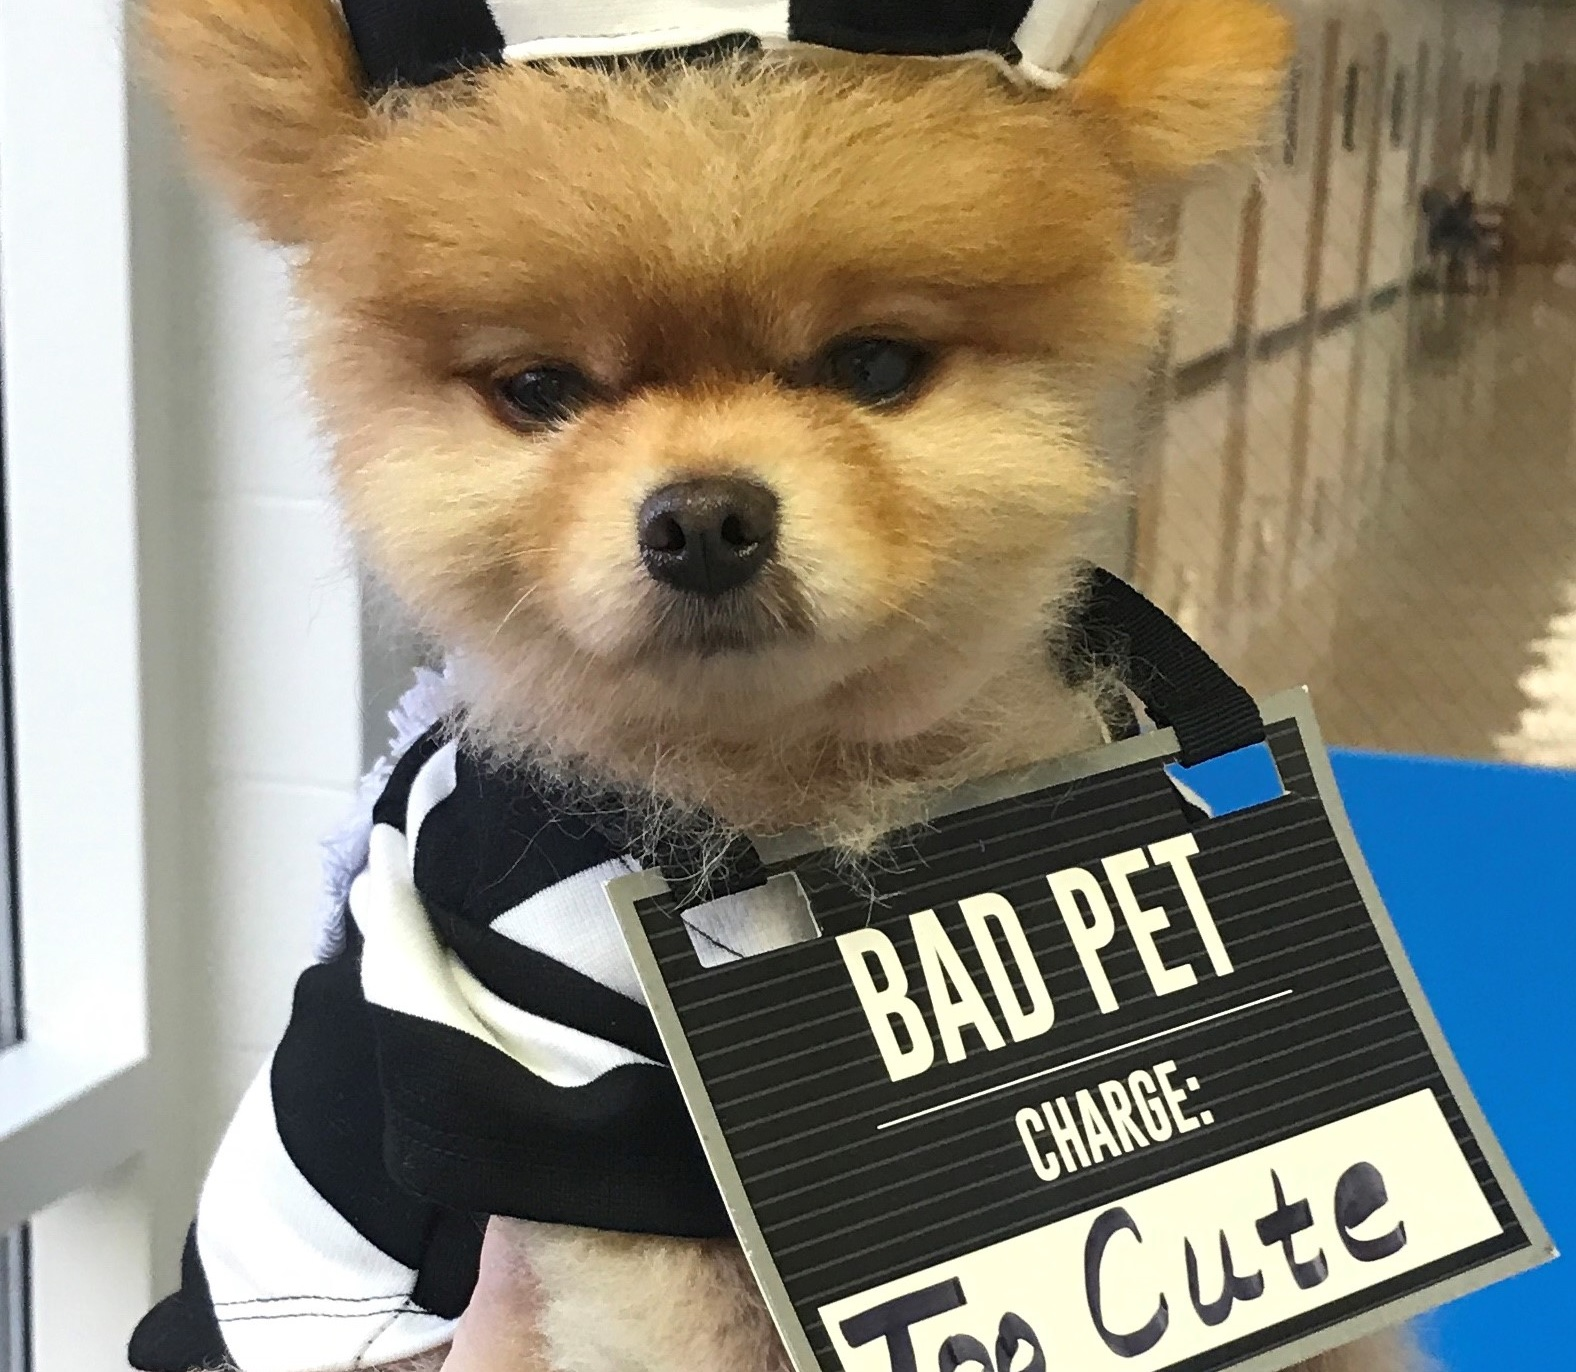 Small dog in a bad pet custome charged with being too cute